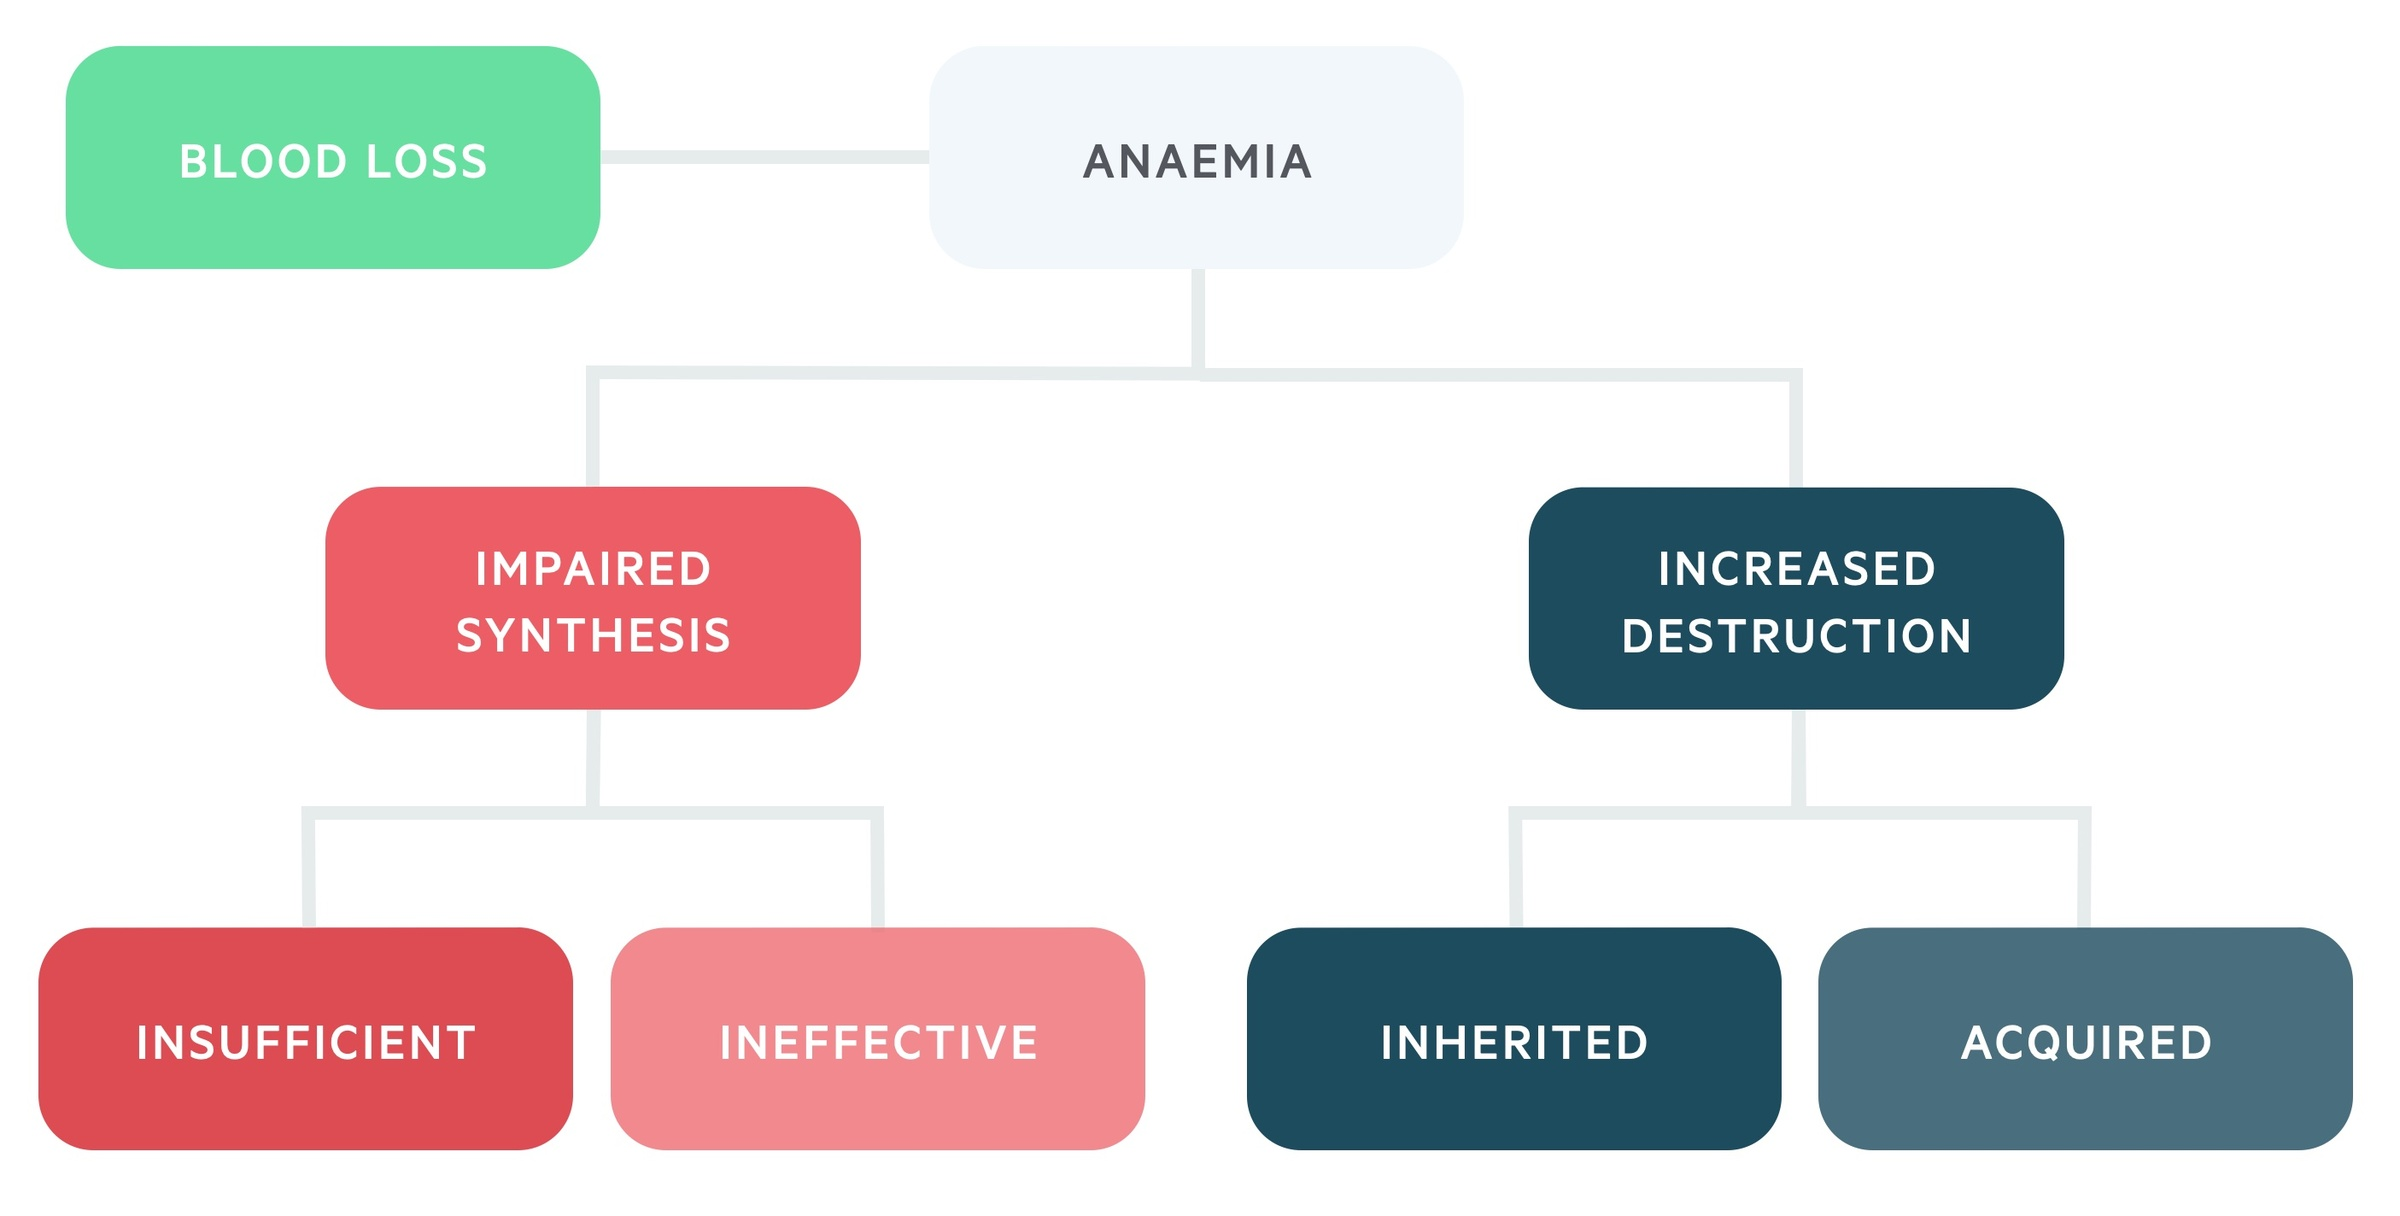 Aetiological causes of anaemia